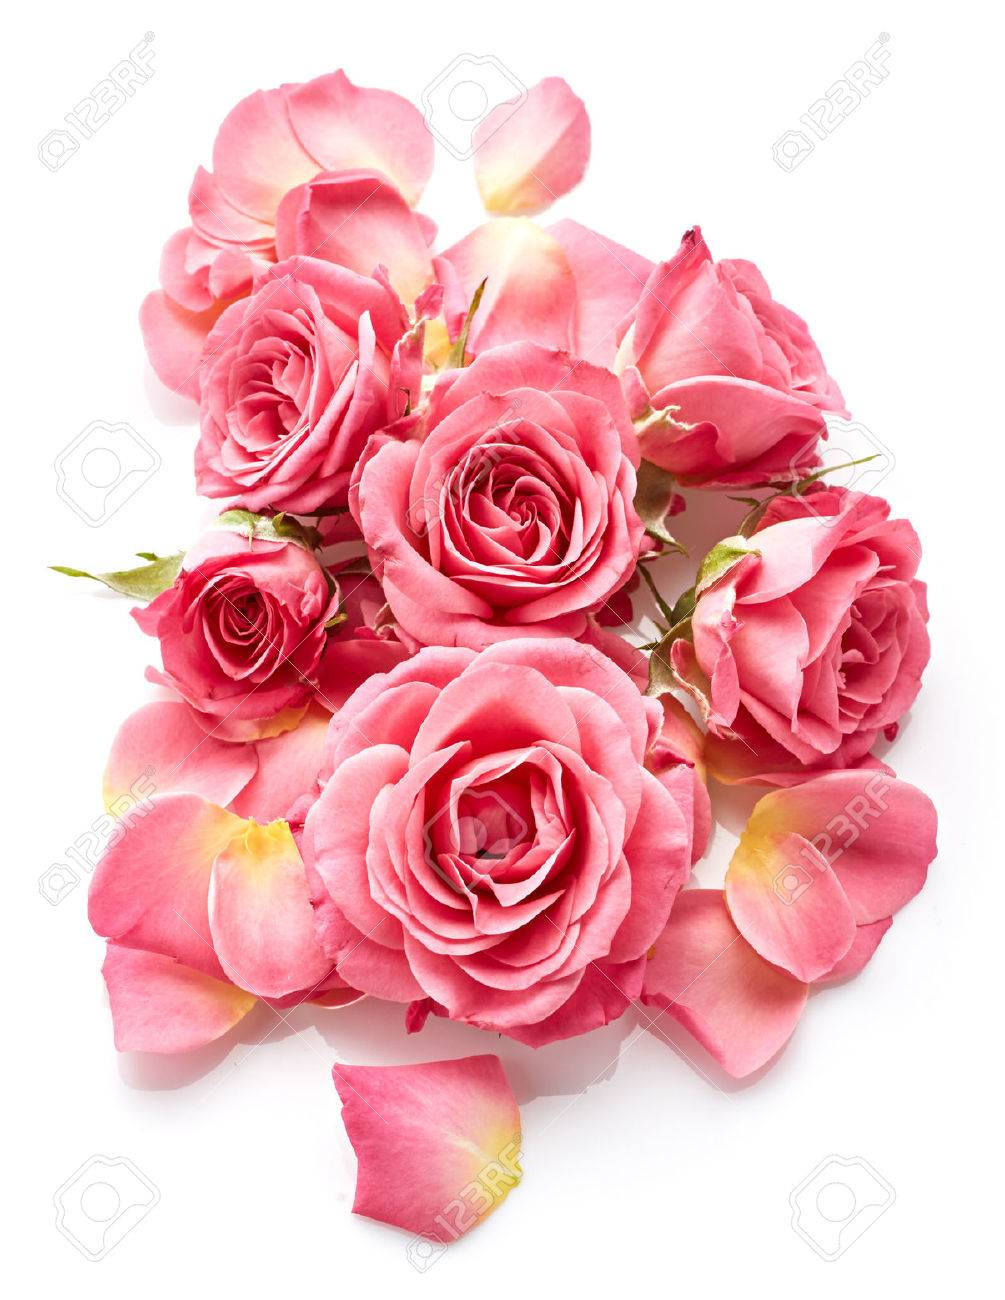 Pink roses isolated on white background - 46267830